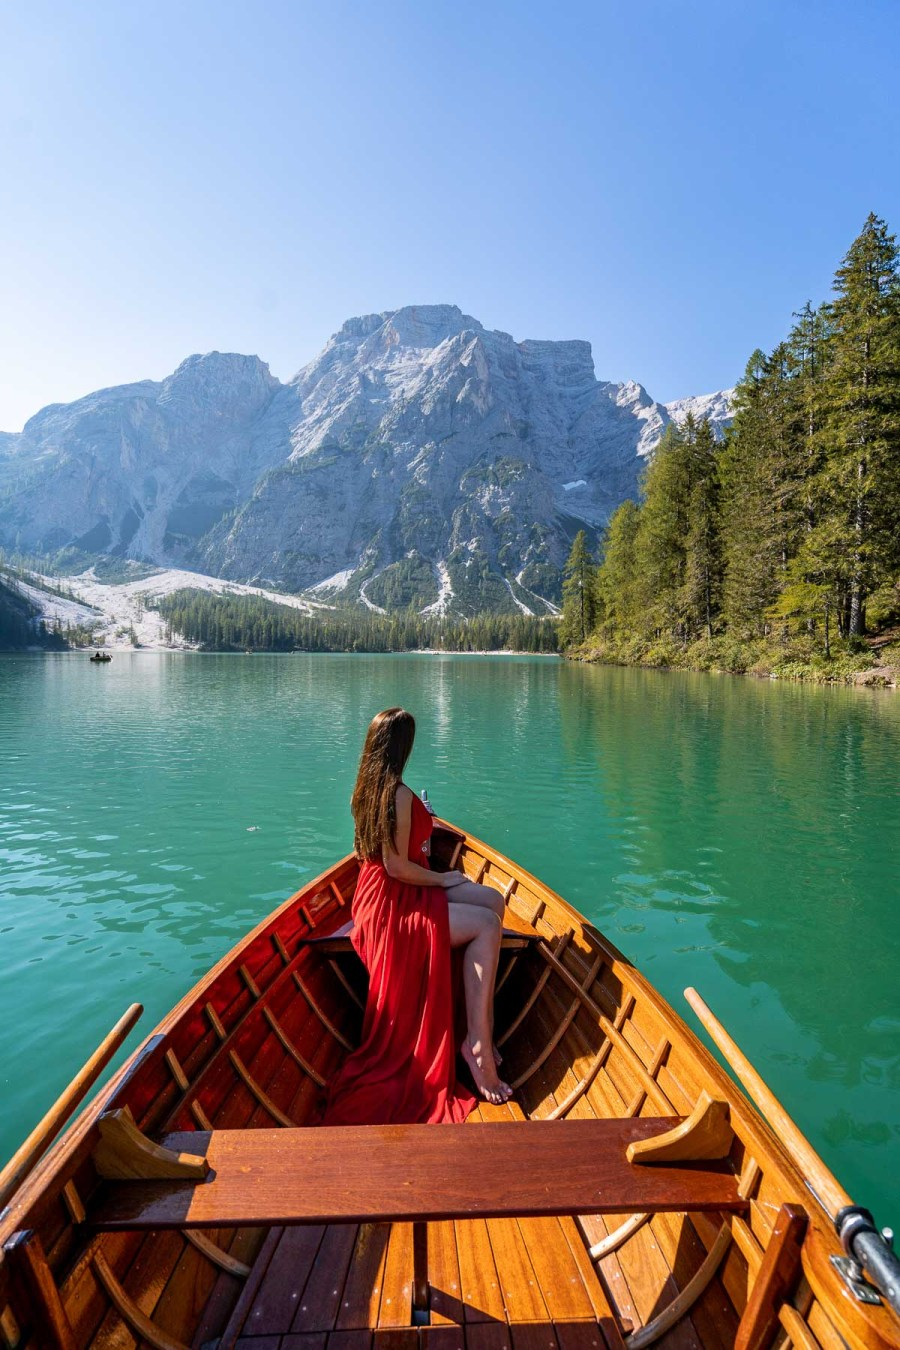 Girl in a red dress sitting in a rowboat at Lago di Braies in the Dolomites